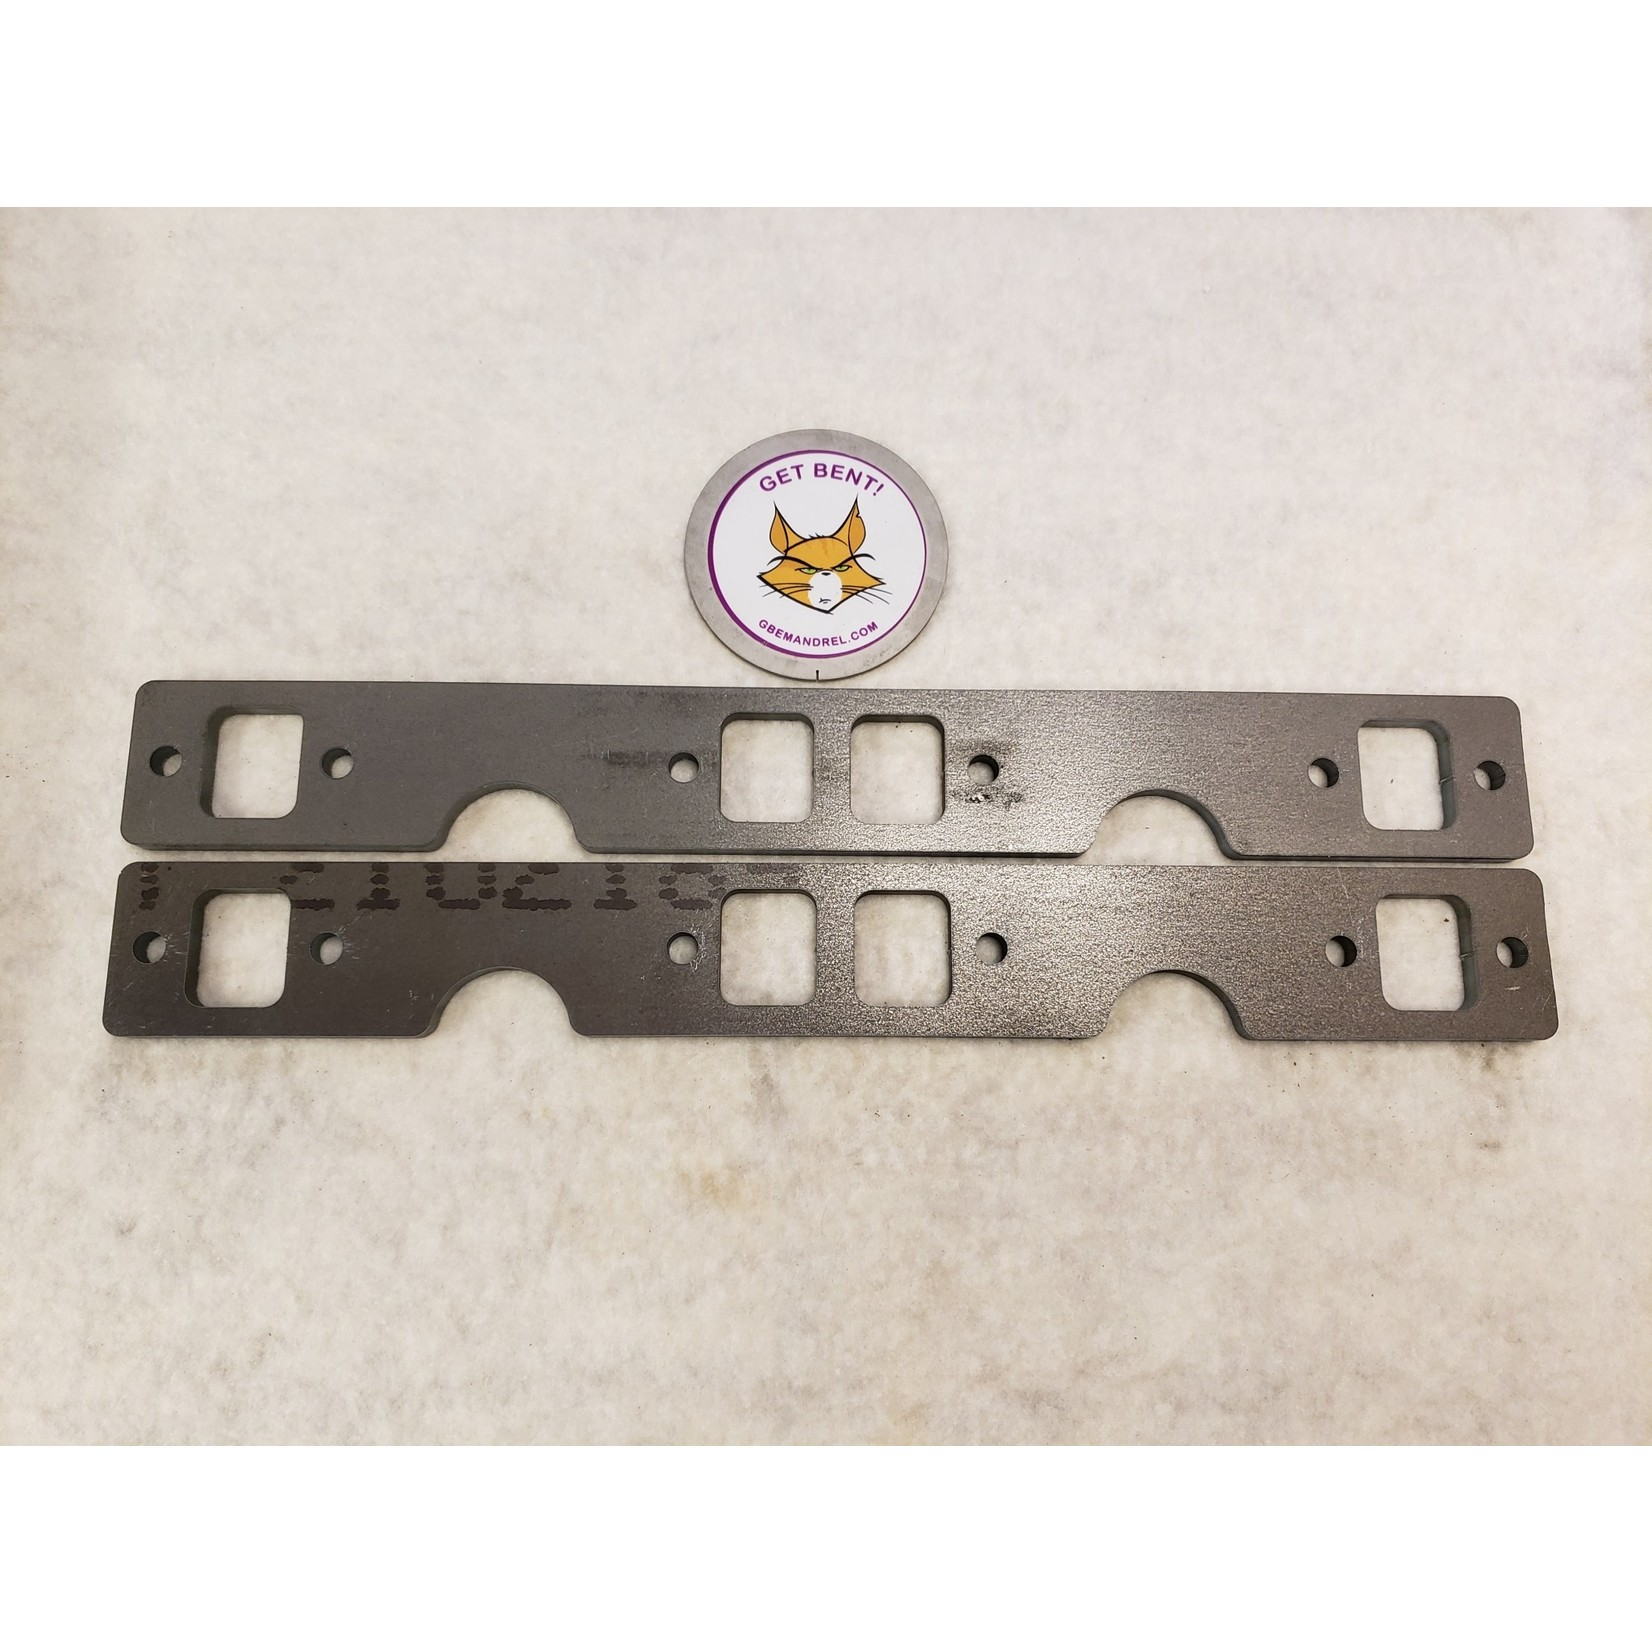 GM CHEVY 262-400 SMALL BLOCK SQ. PORT STEEL HEADER FLANGES